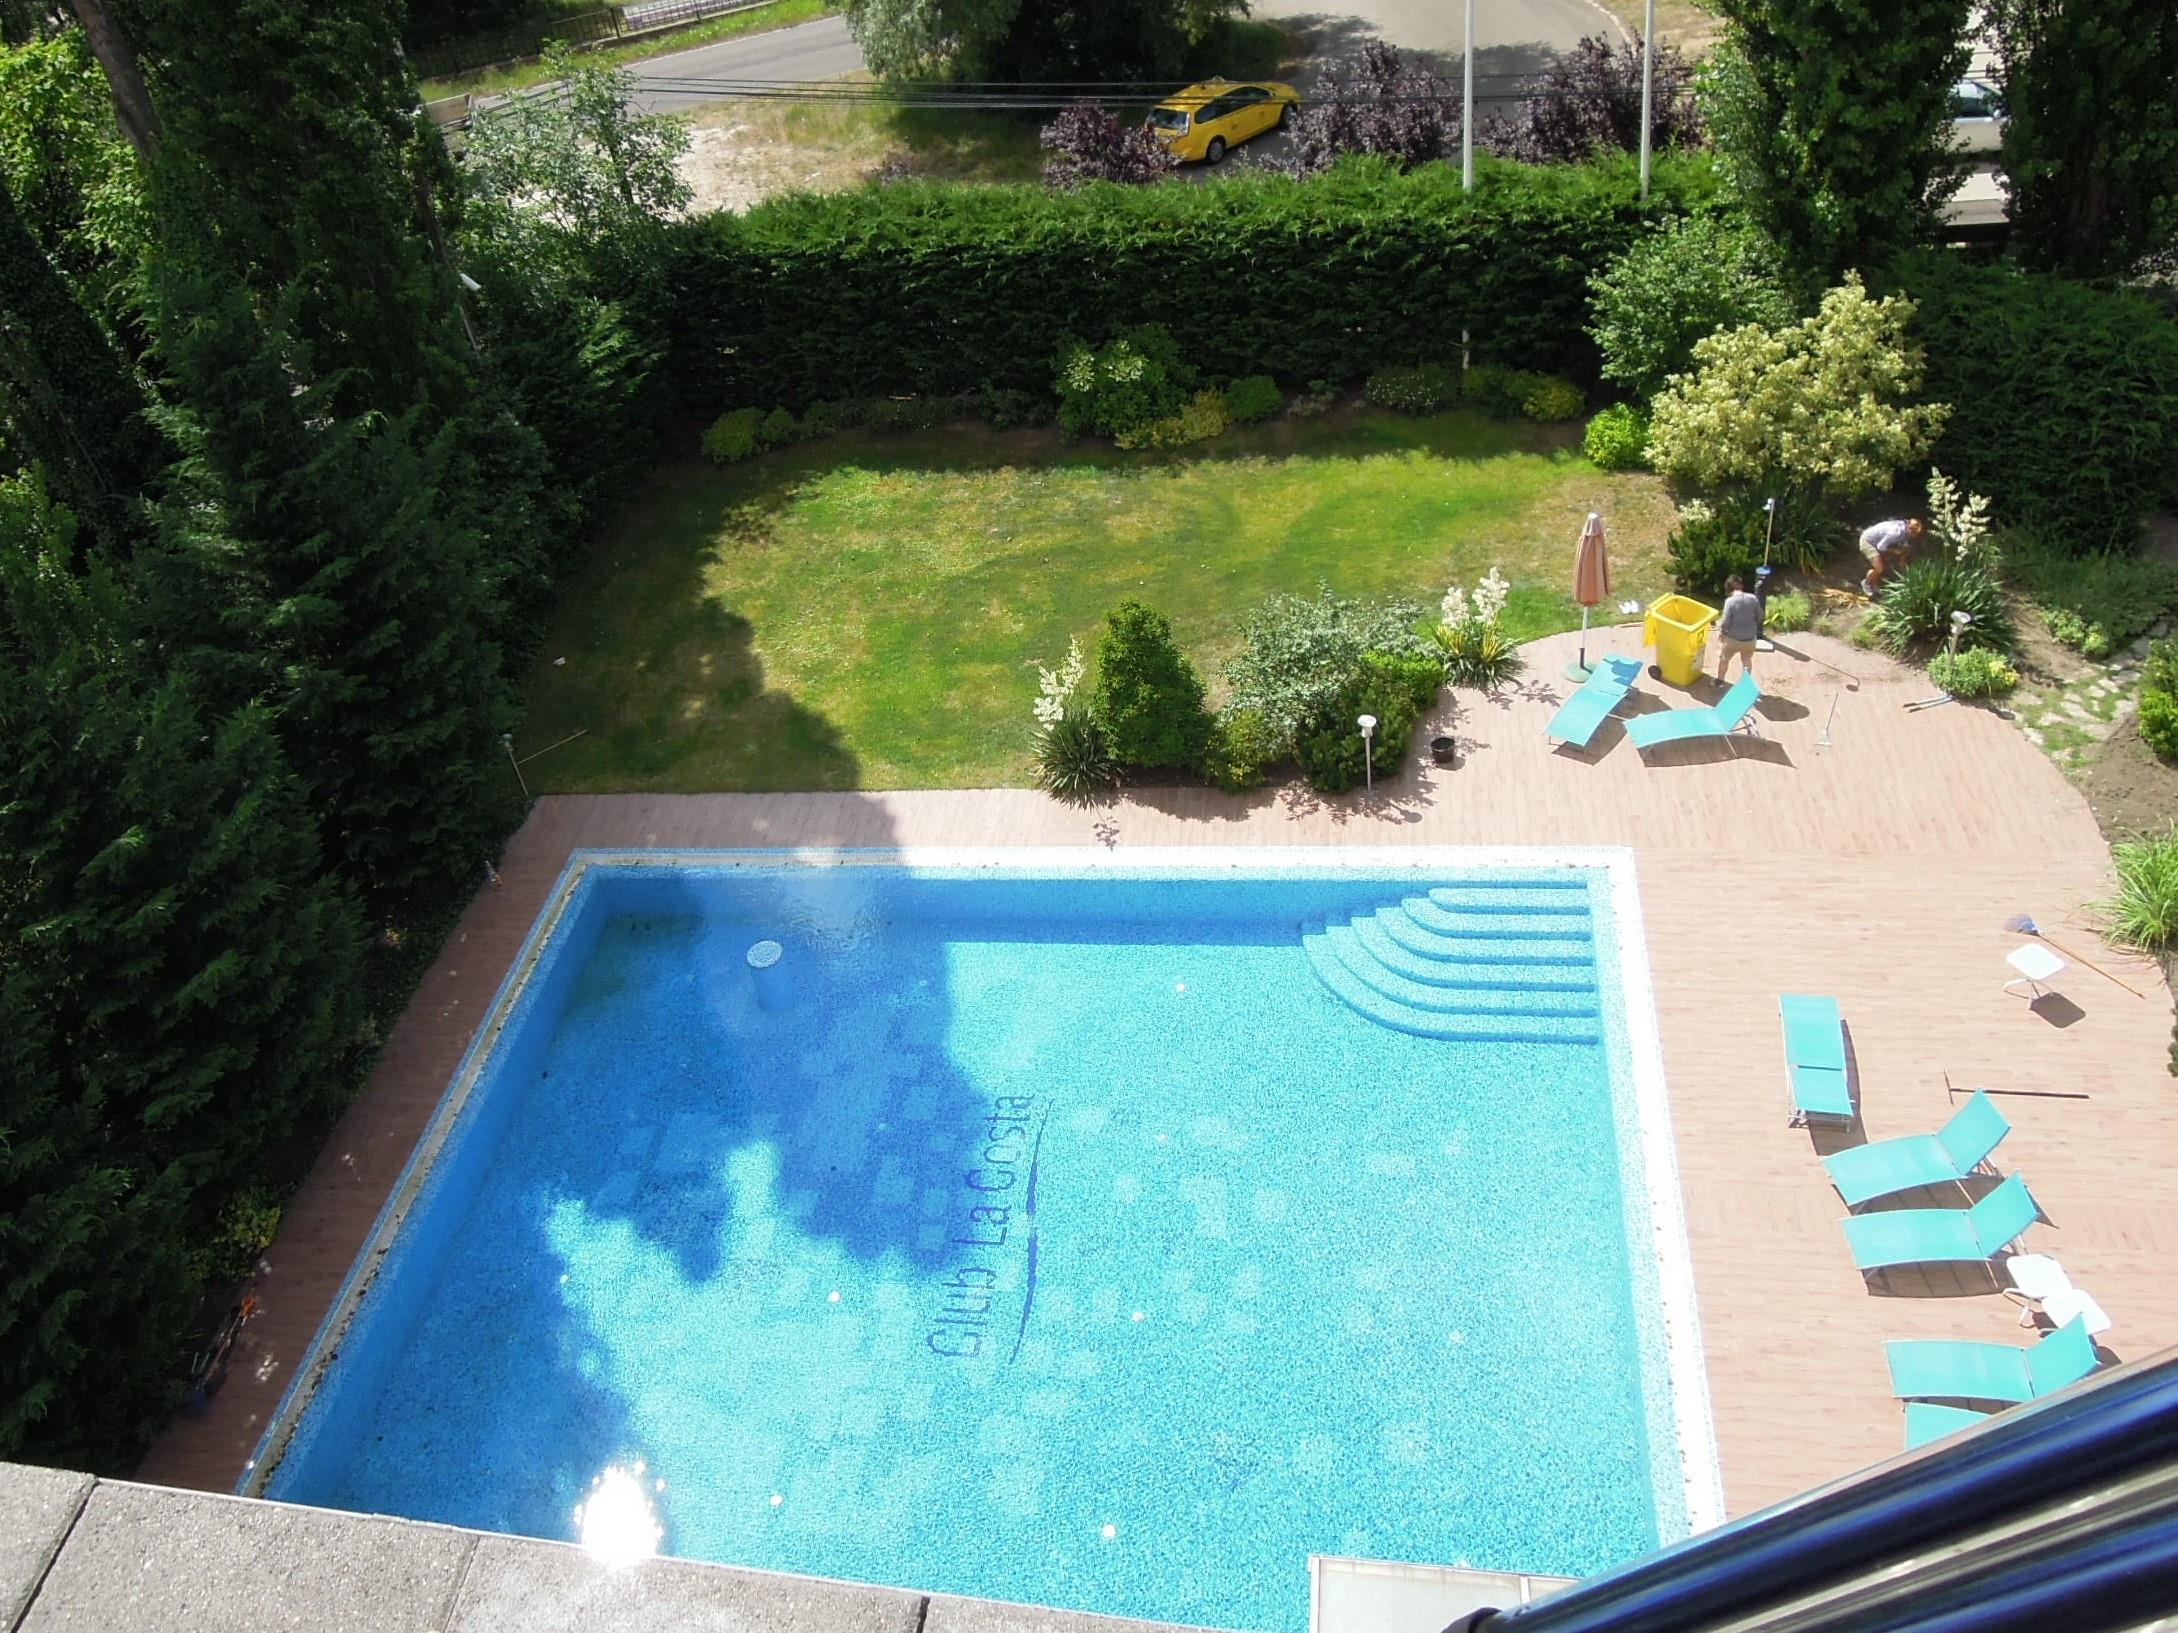 116sm, 4 rooms apartment with panoramic view , roofterrace is for sale in an apartmenthpse with swimming pool in Budapest